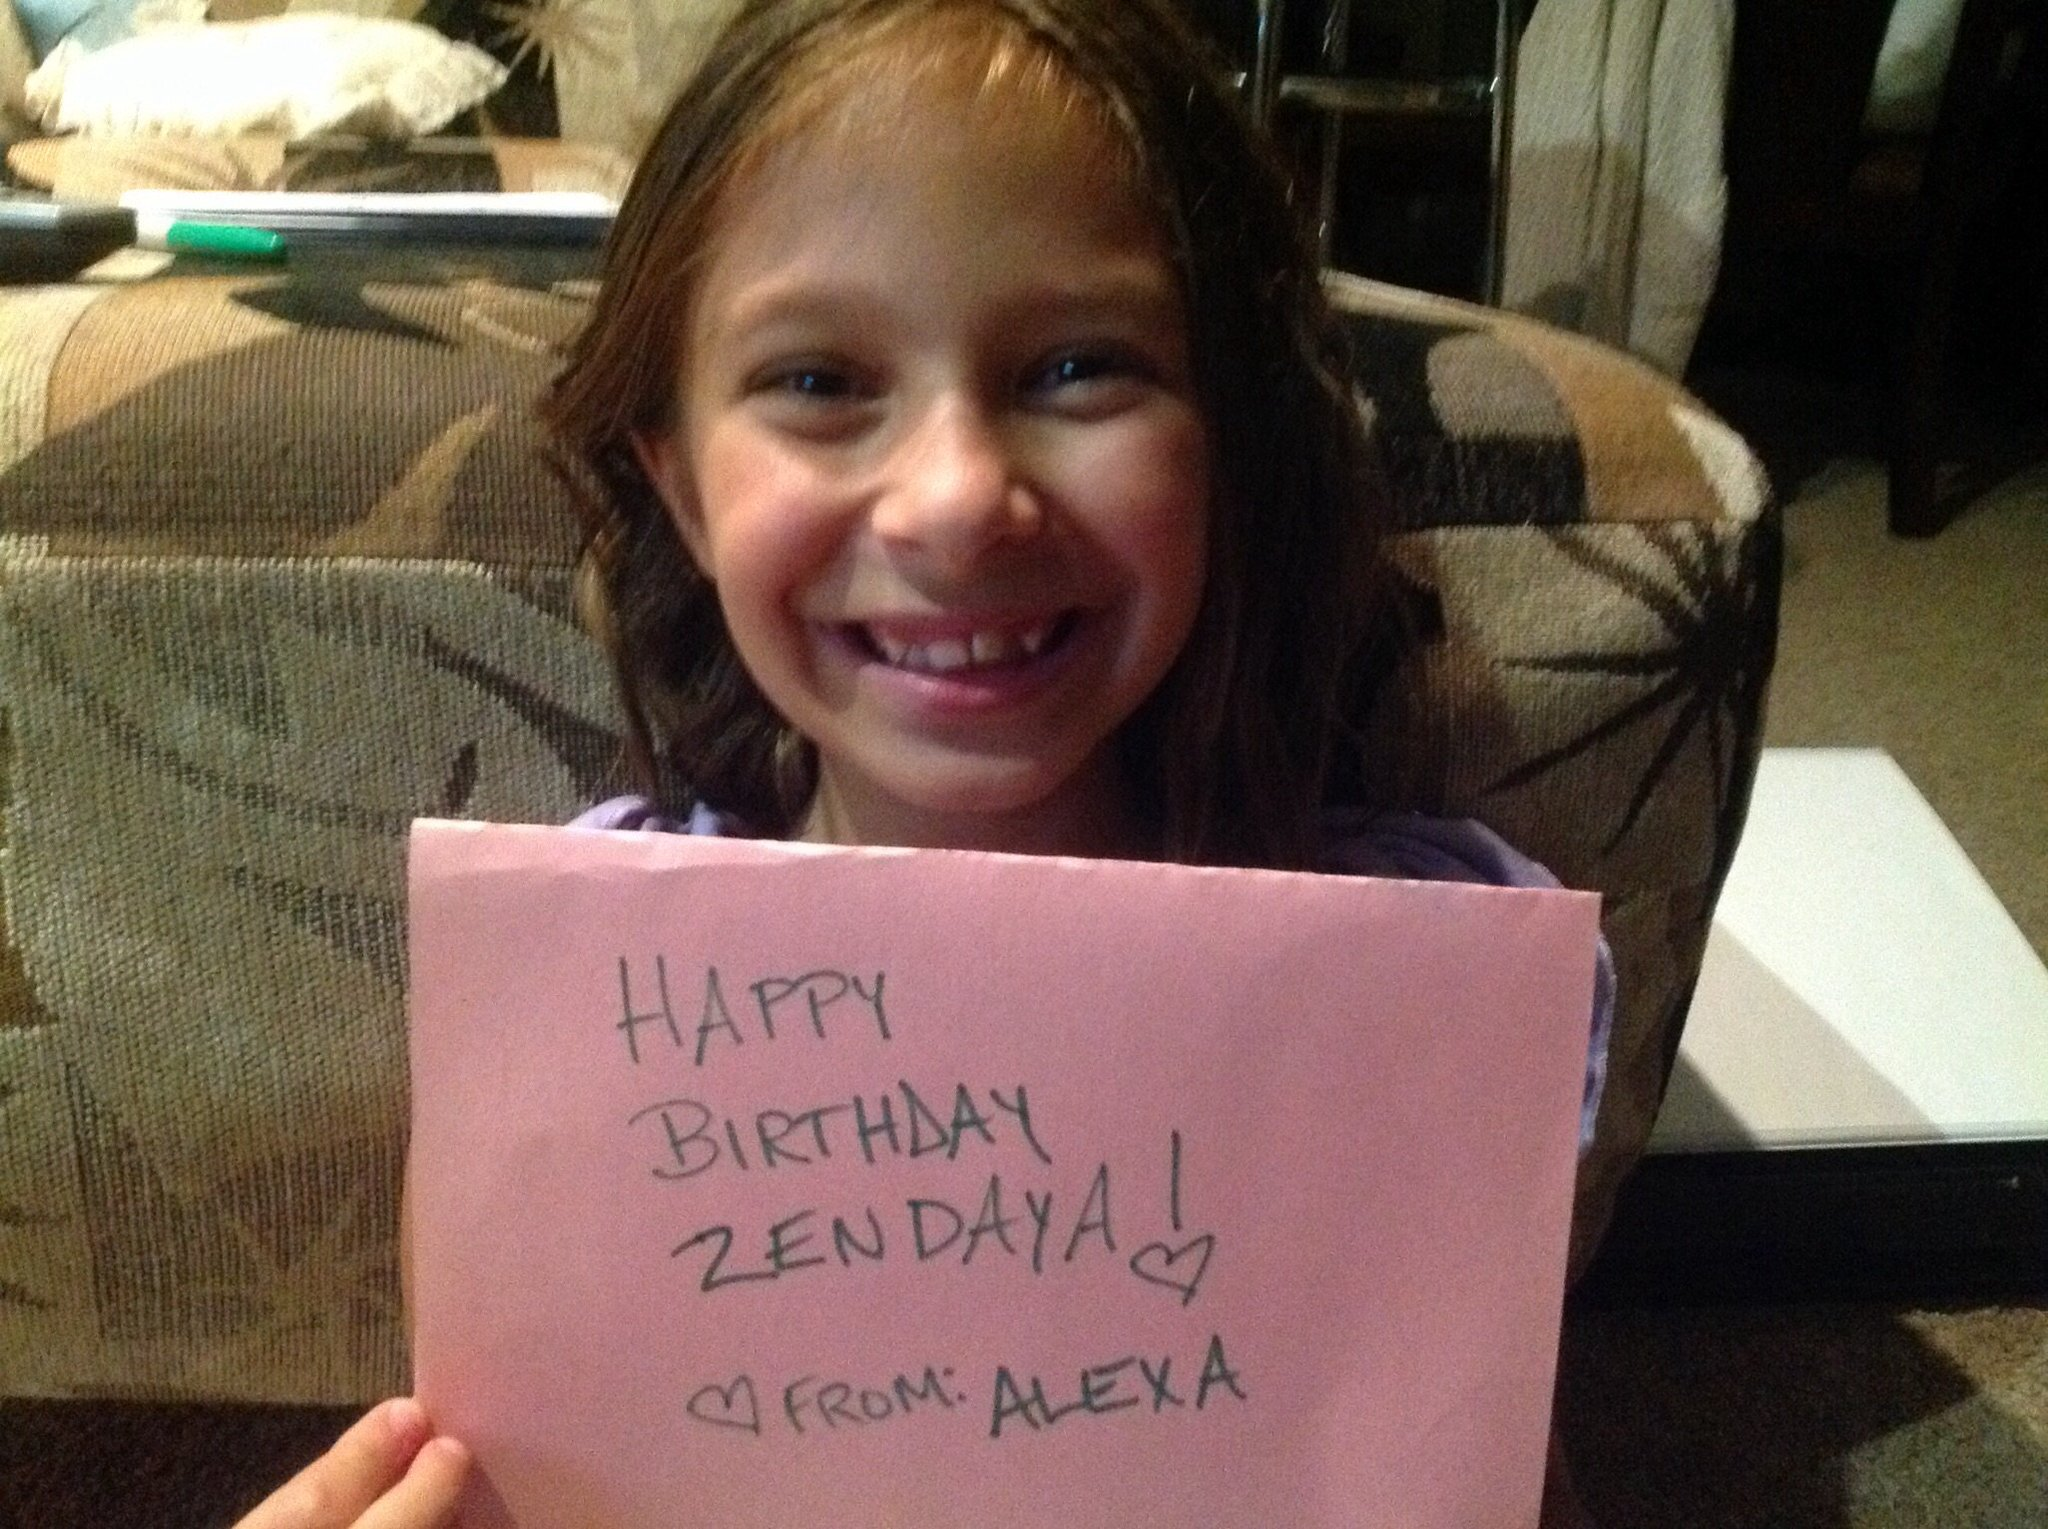 Happy birthday to fabulous you Zendaya! You are an inspiration to me! Love from Alexa. I am 9.